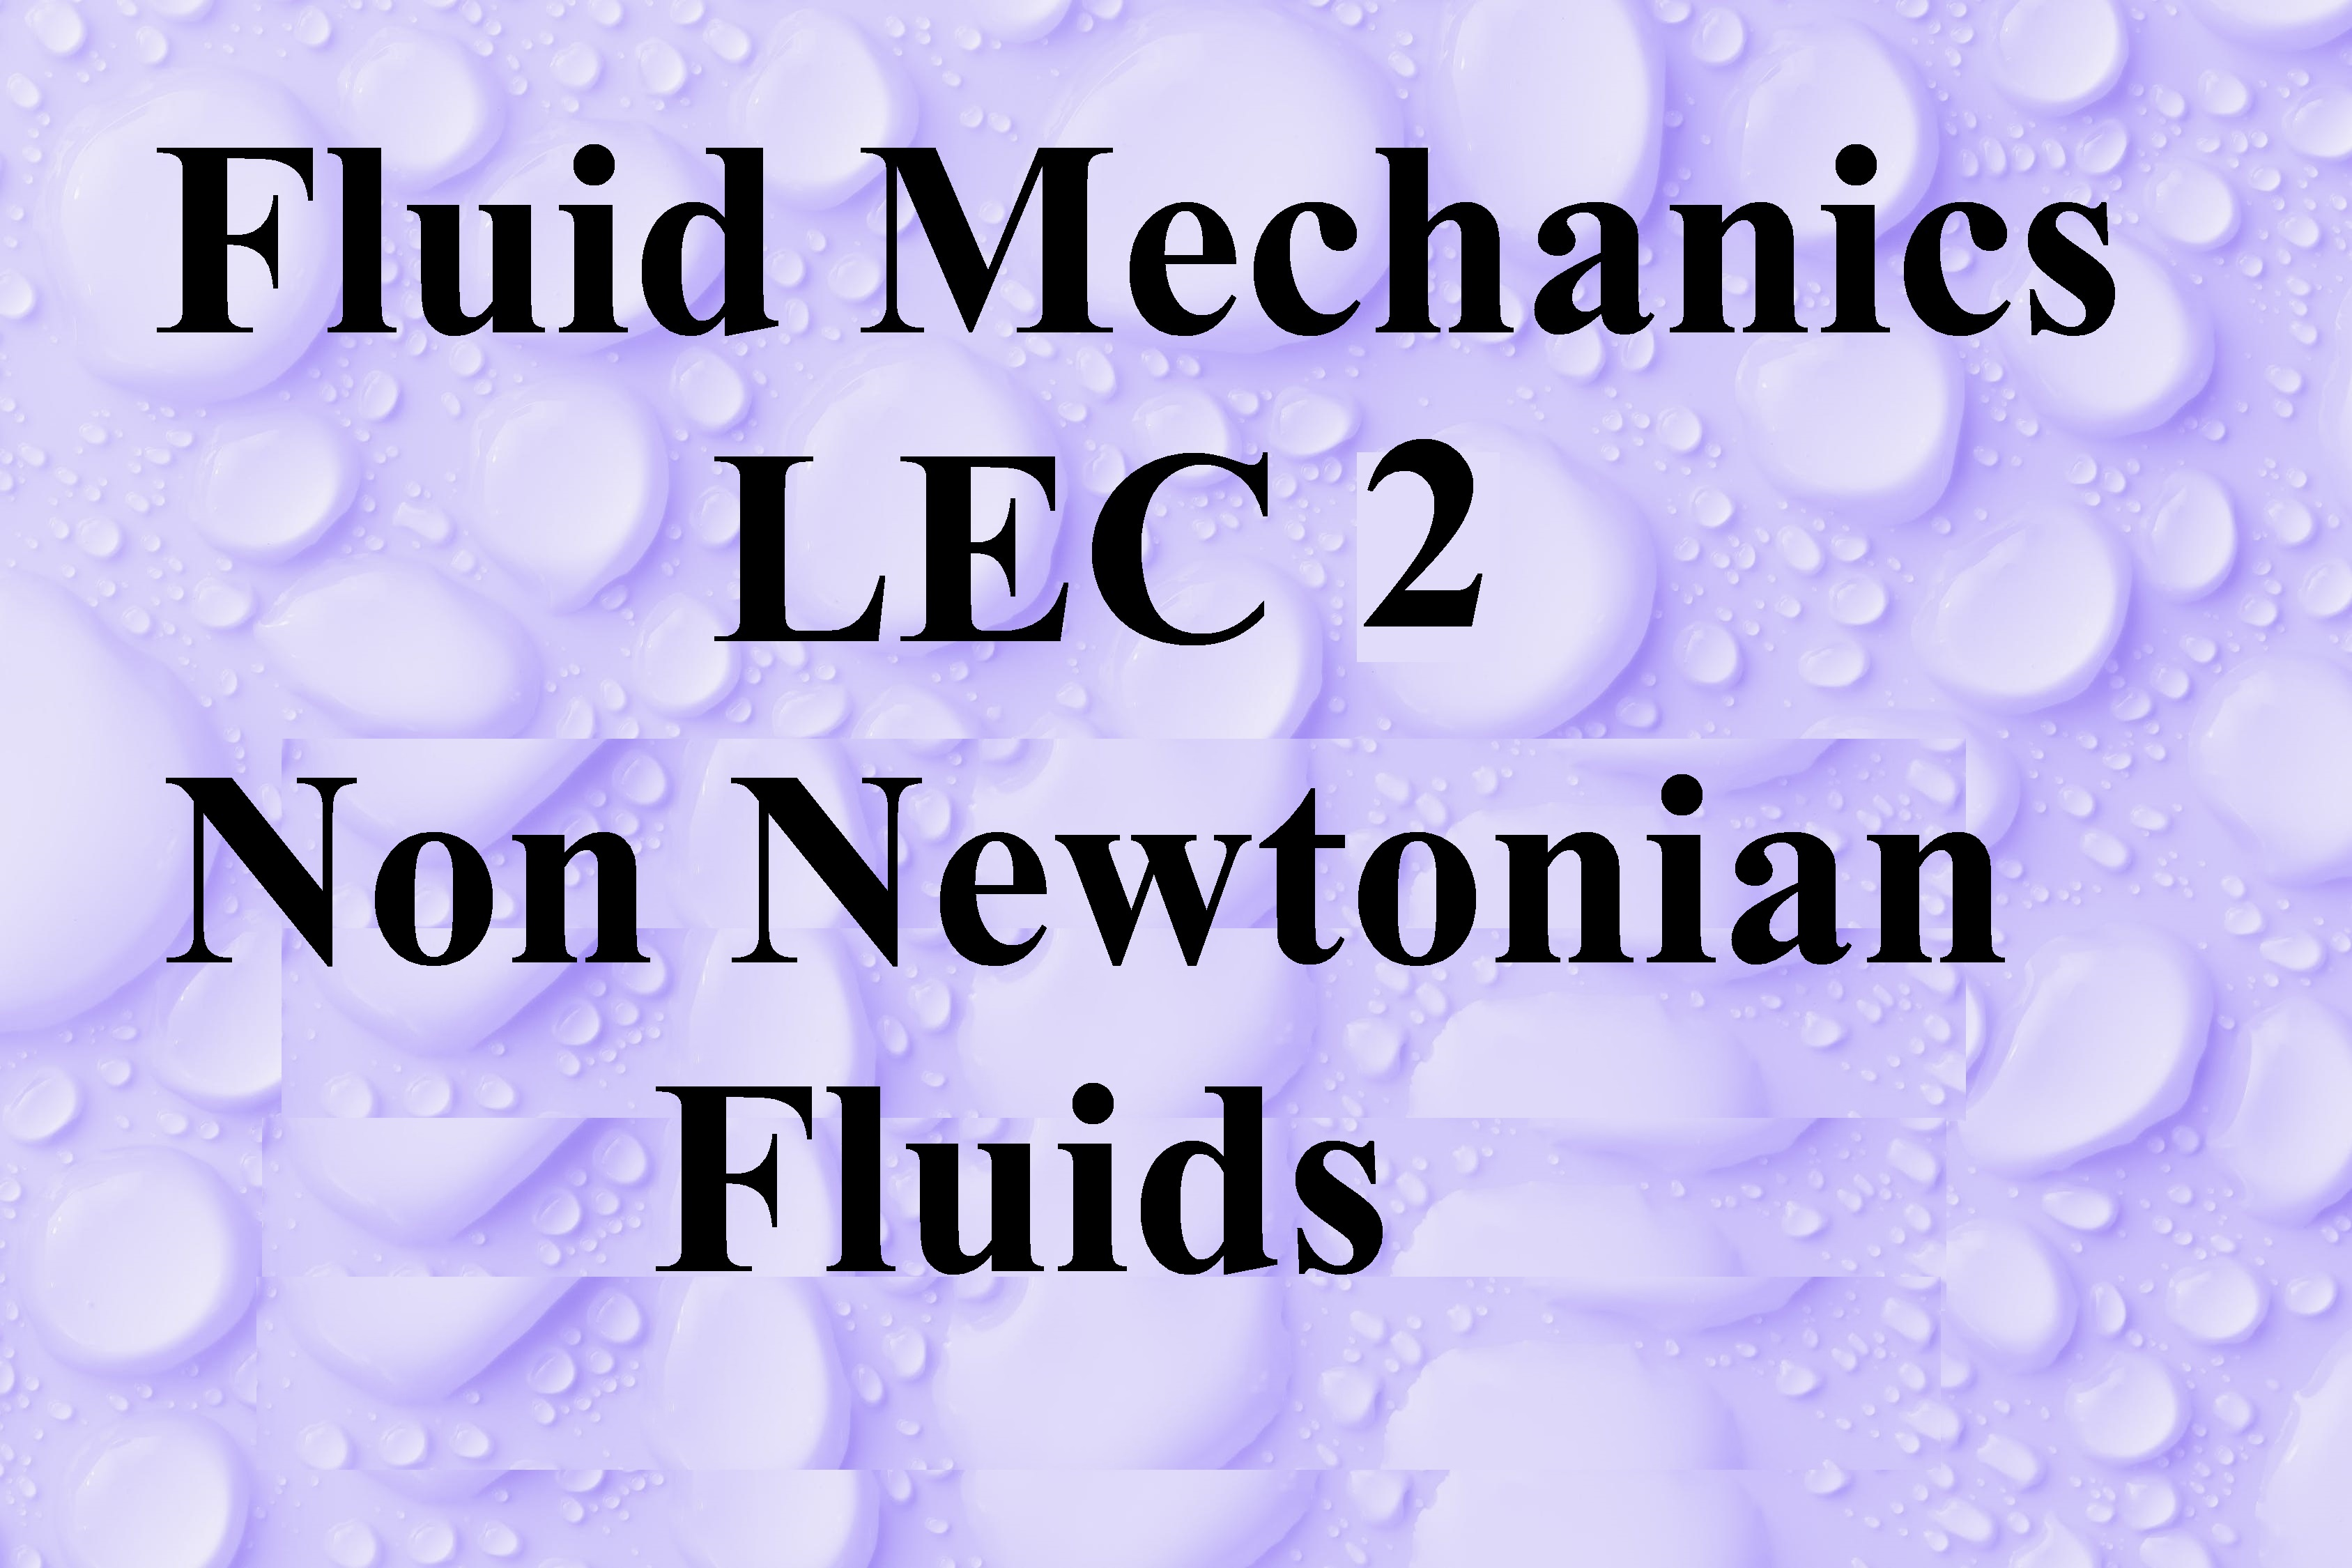 Lec 2 Non Newtanion and Other properties